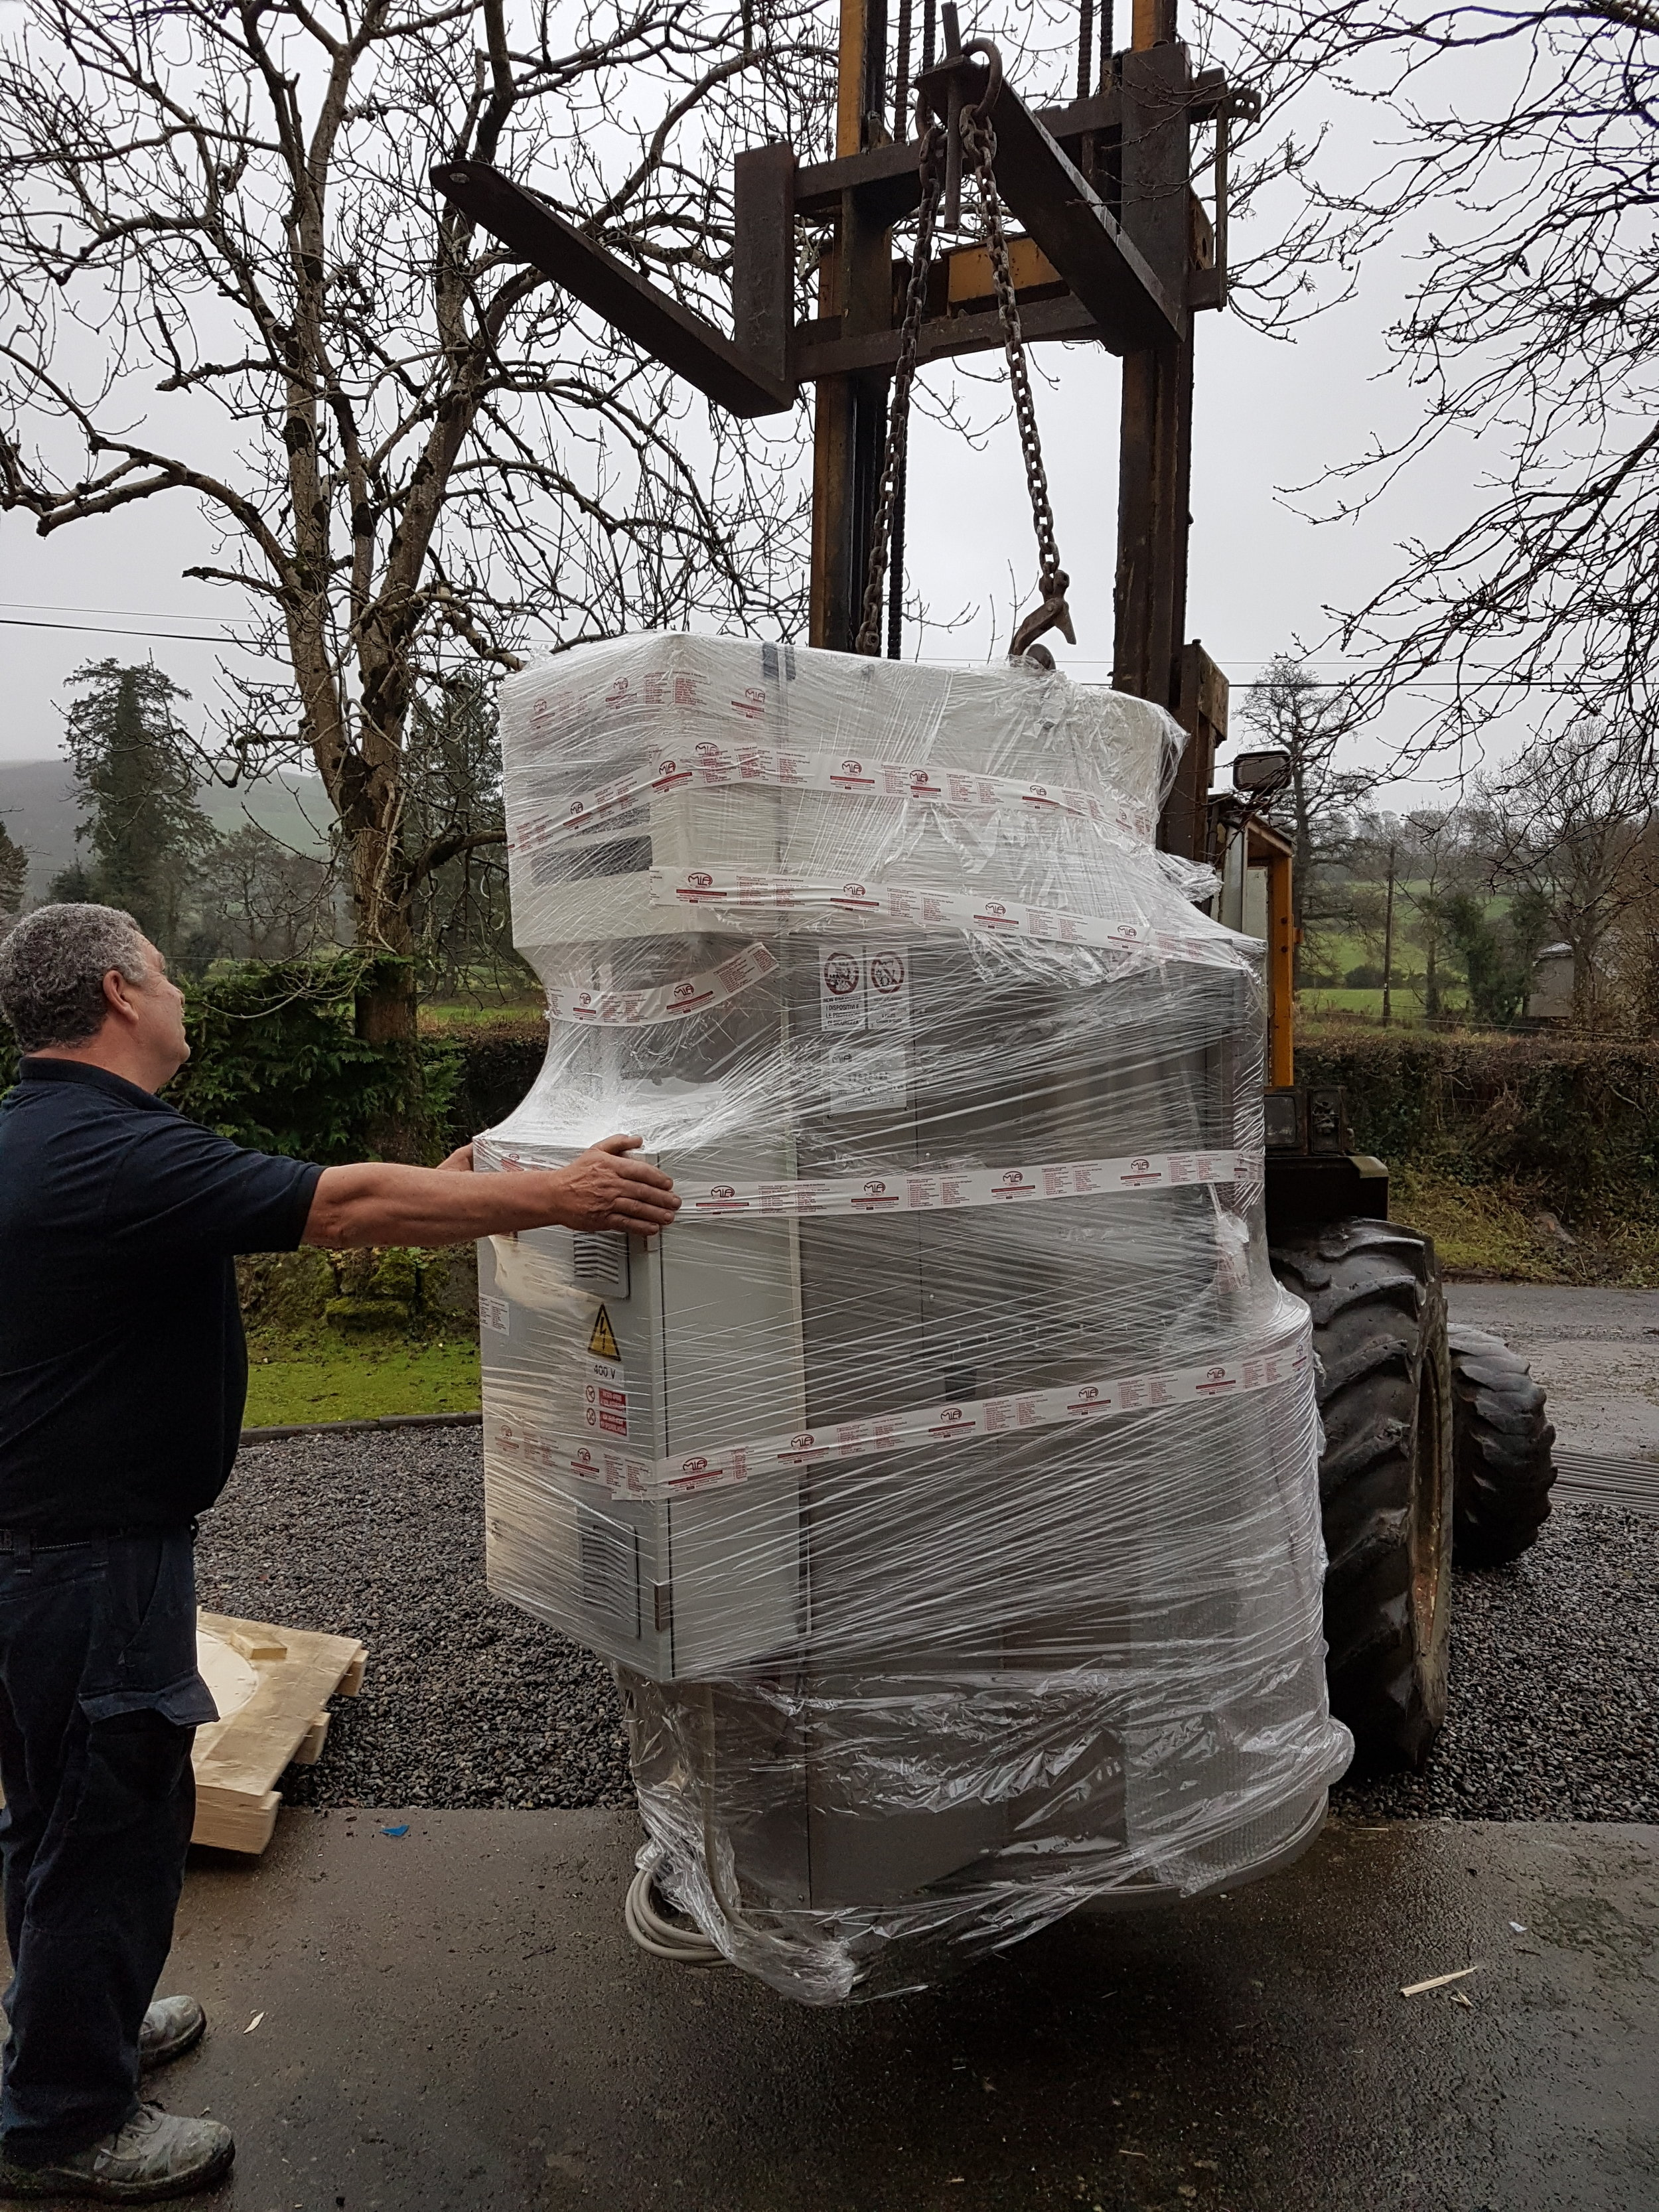 And seven months later it arrived!! Our new cooker. Now we can make nougat for the nation!! Thank you Wicklow LEO for all your help and support. Thanks Joe, Peter and my darling Jeanne, if it wasn't for you it would still be outside!